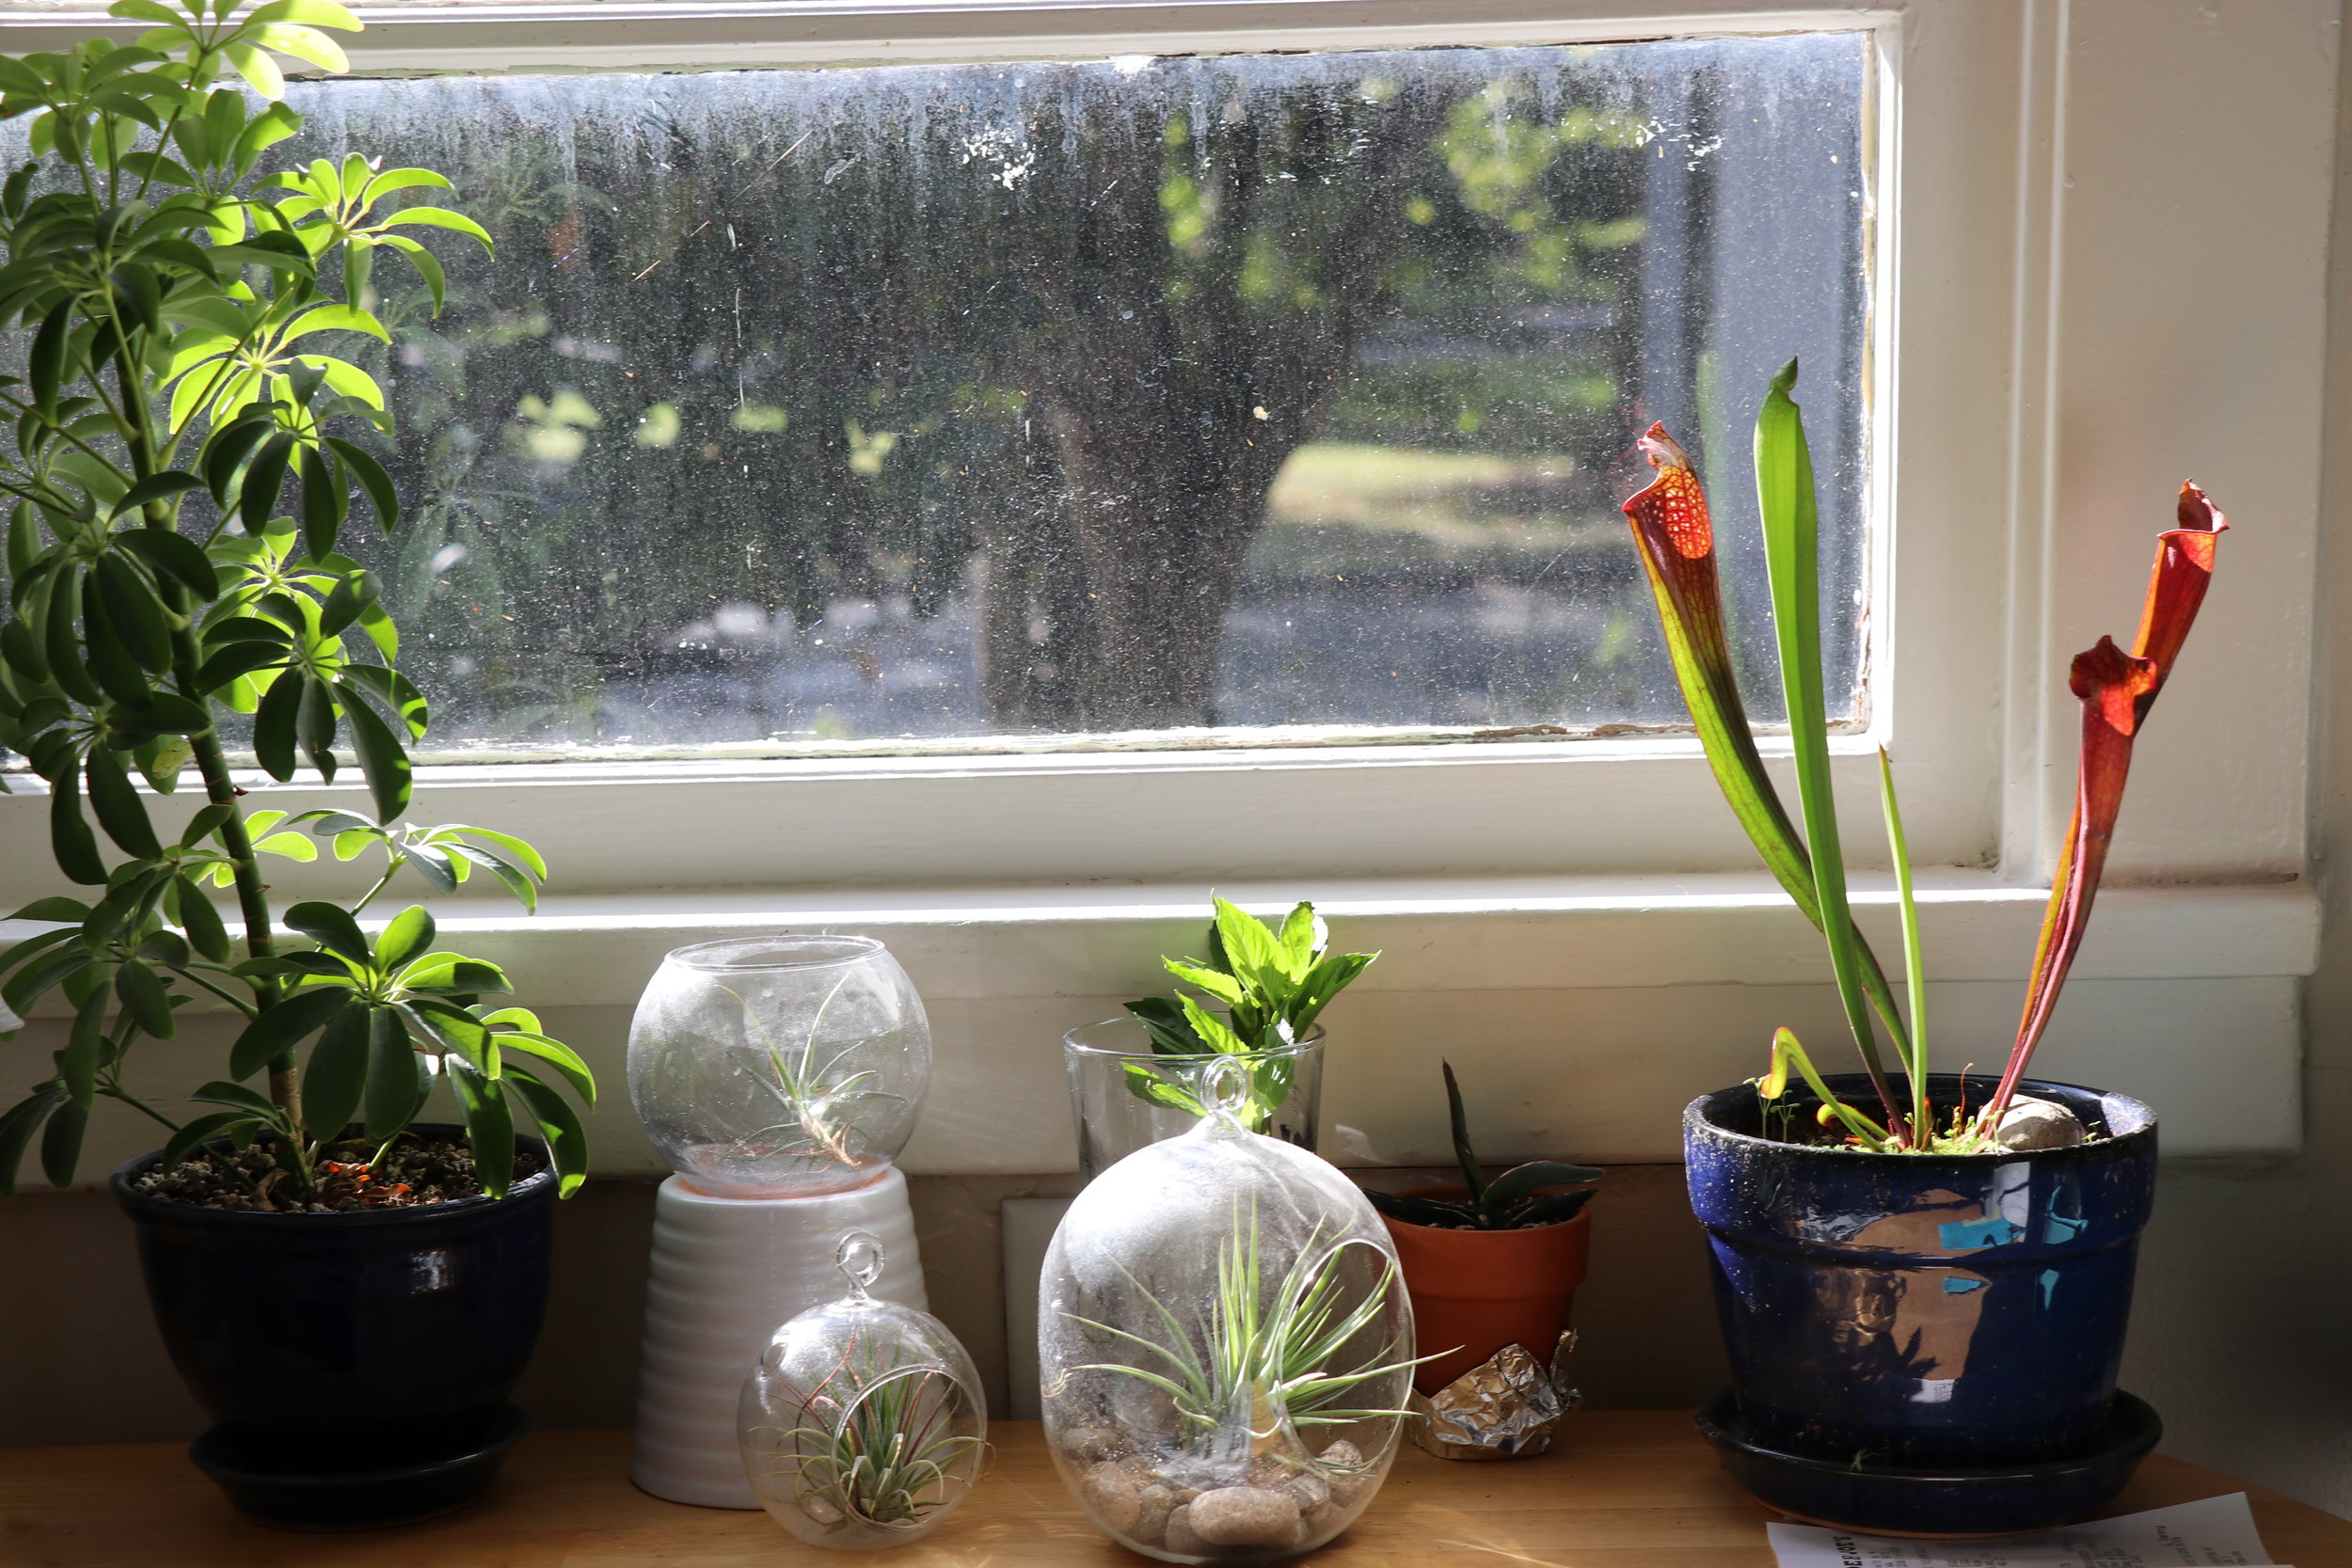 The plants of Seagull House